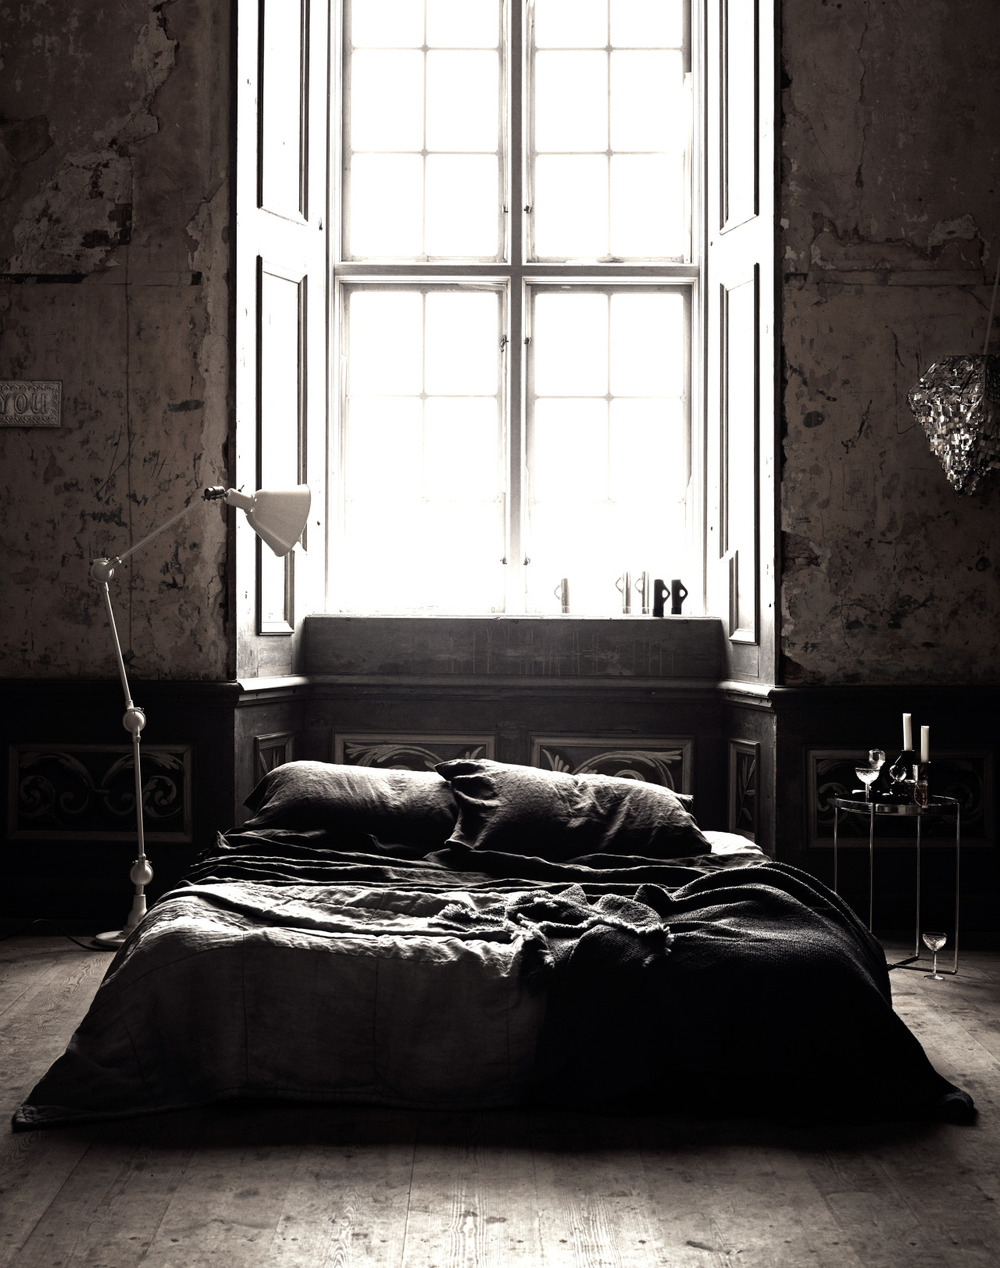 Detail Collective | Interior Spaces | Back to Black in the Bedroom | Image: Daily Design Collector